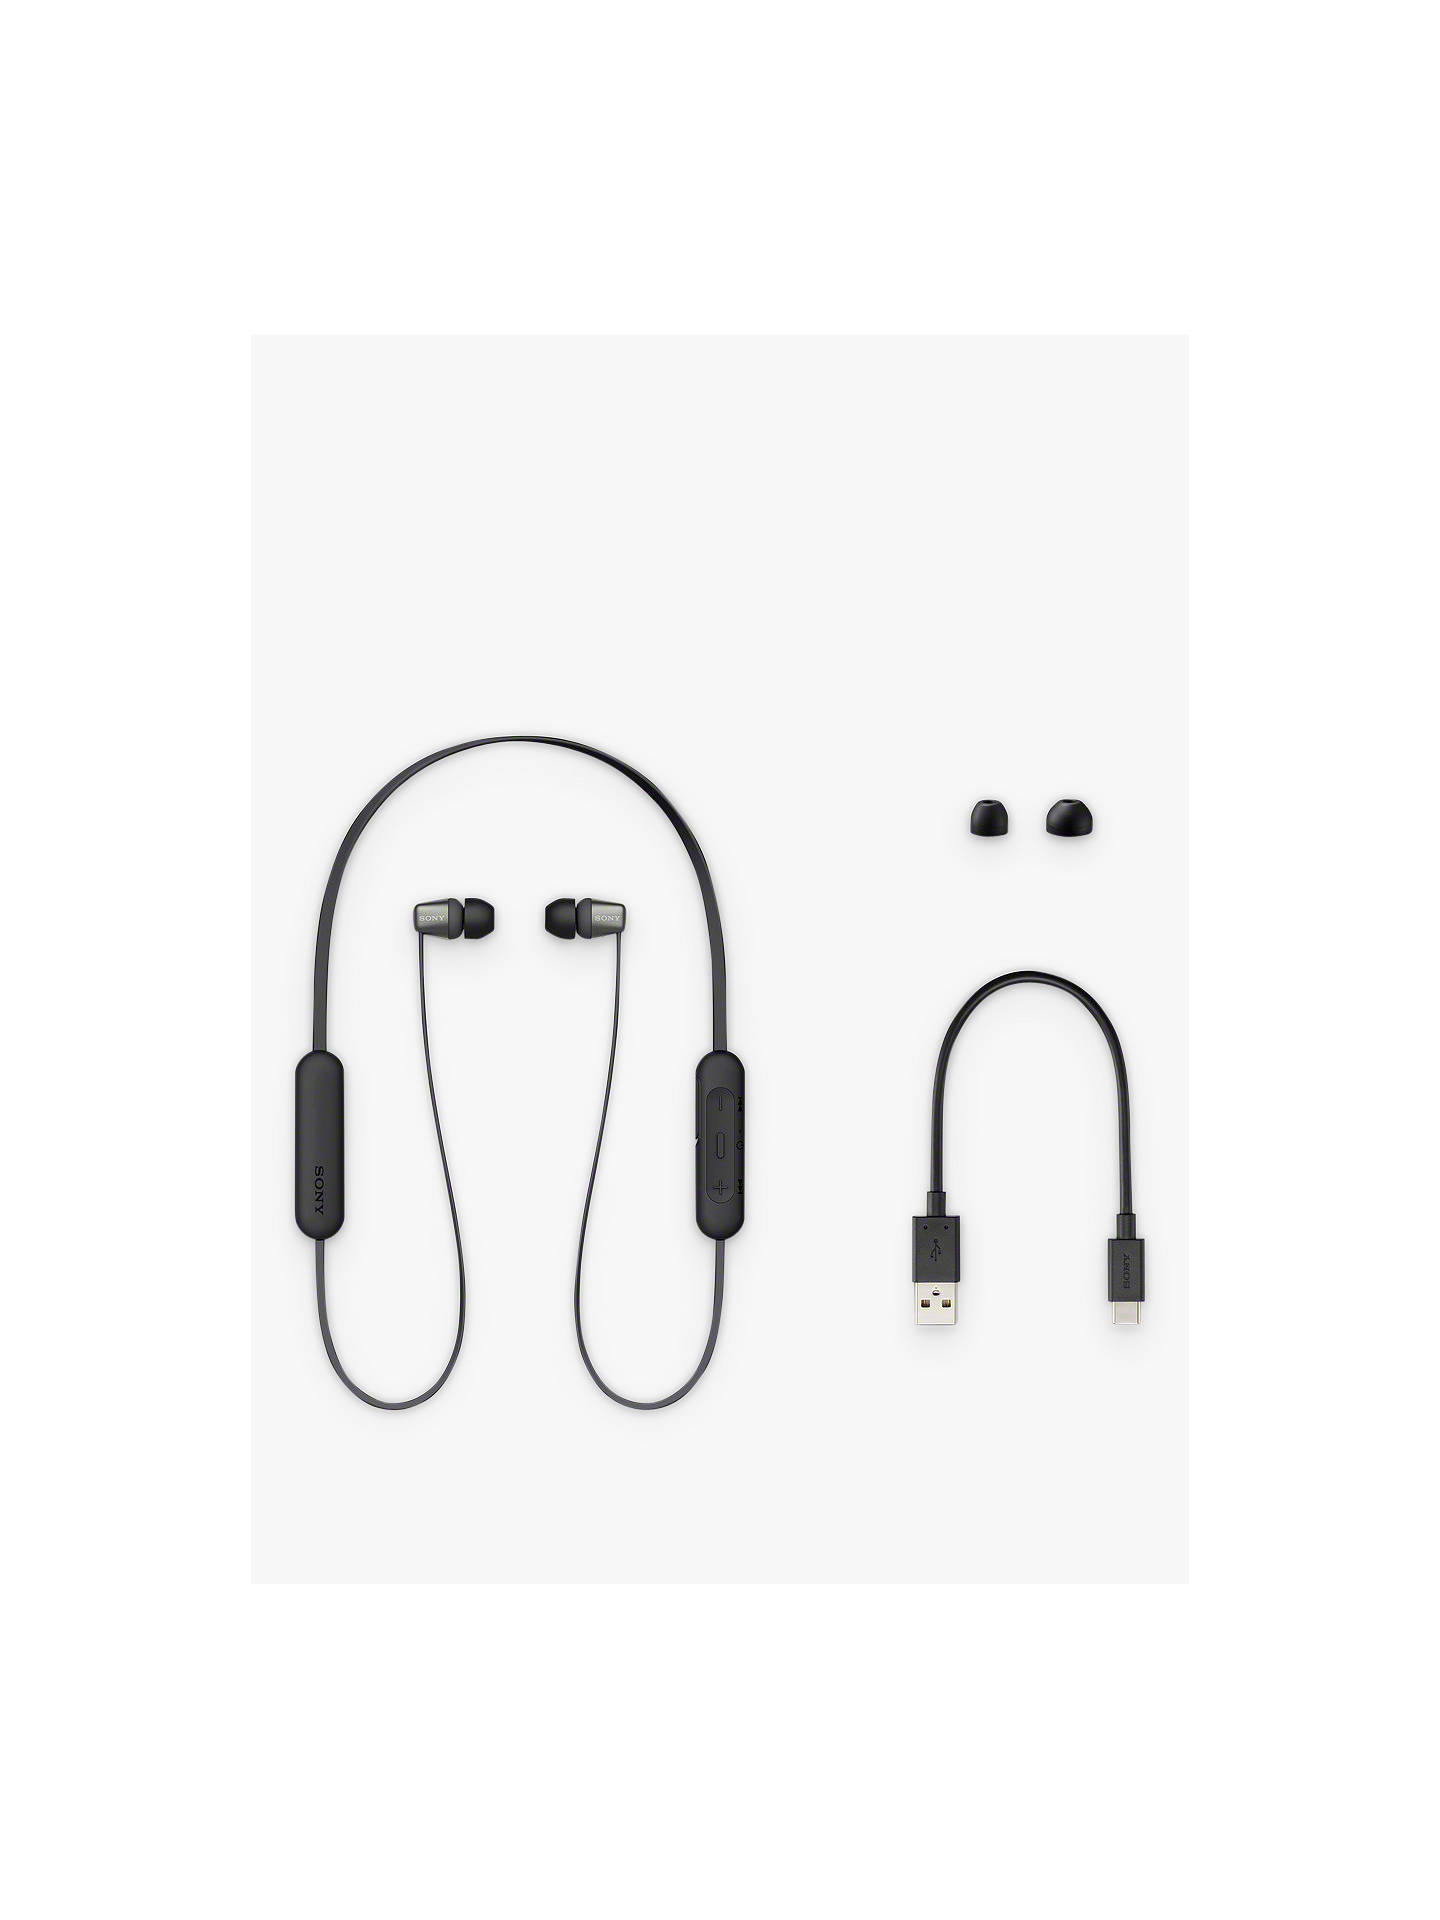 Buy Sony WI-C310 Bluetooth Wireless In-Ear Headphones with Mic/Remote, Black Online at johnlewis.com